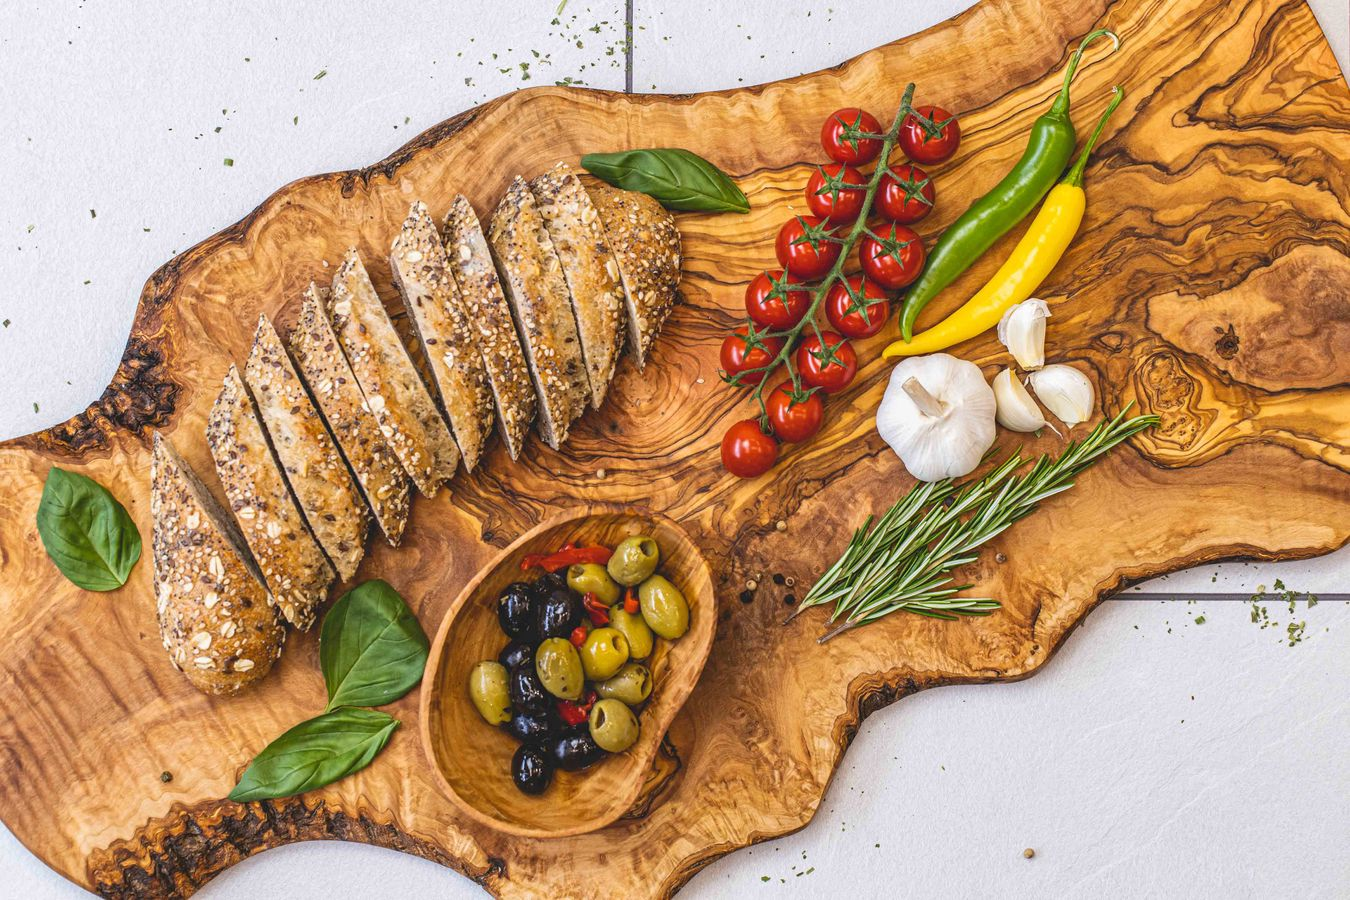 Serving boards or Tapas boards